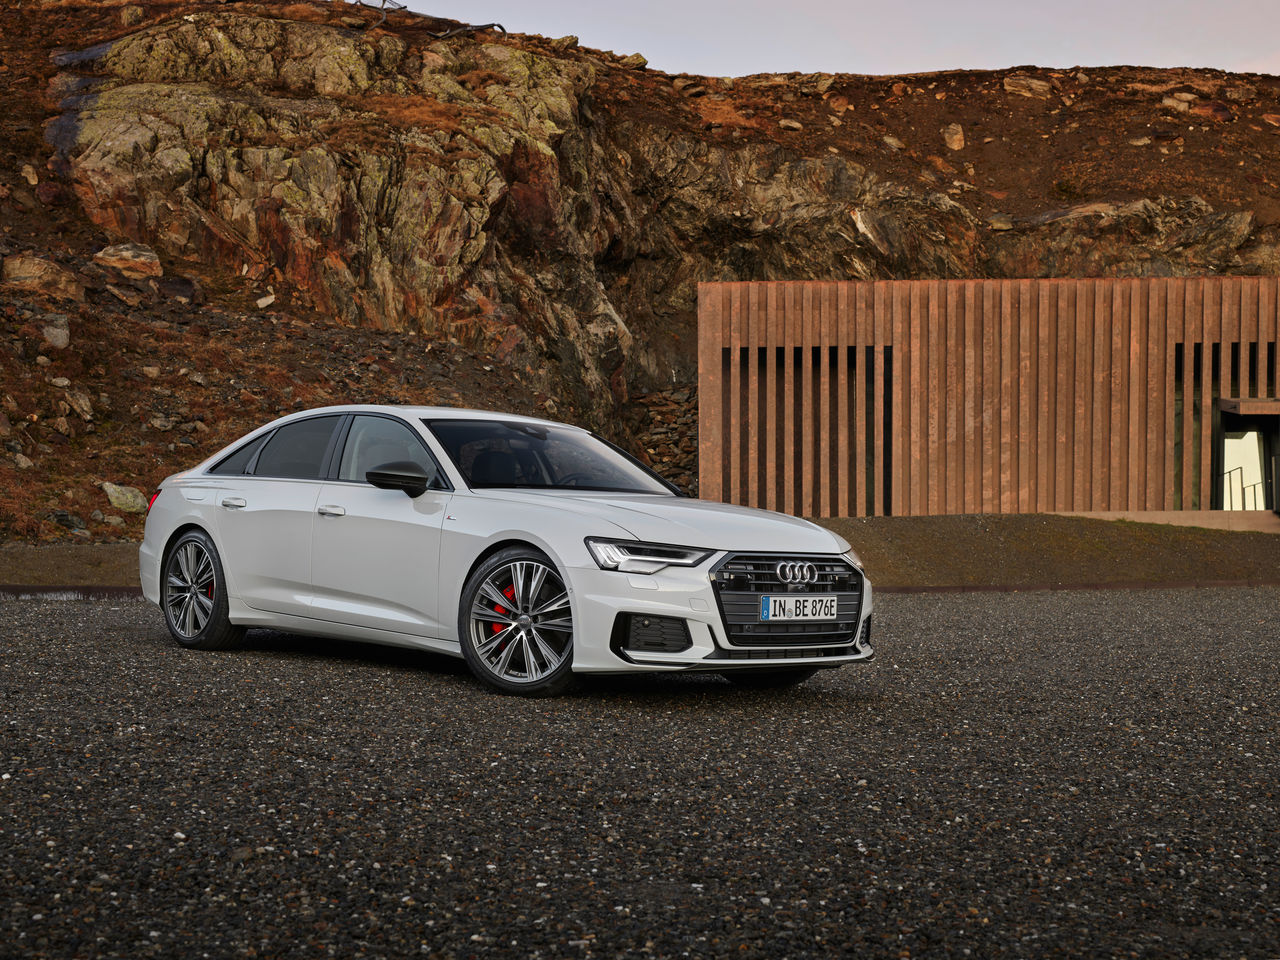 Electrifying full-size sedan: ||the Audi A6 55 TFSI e quattro